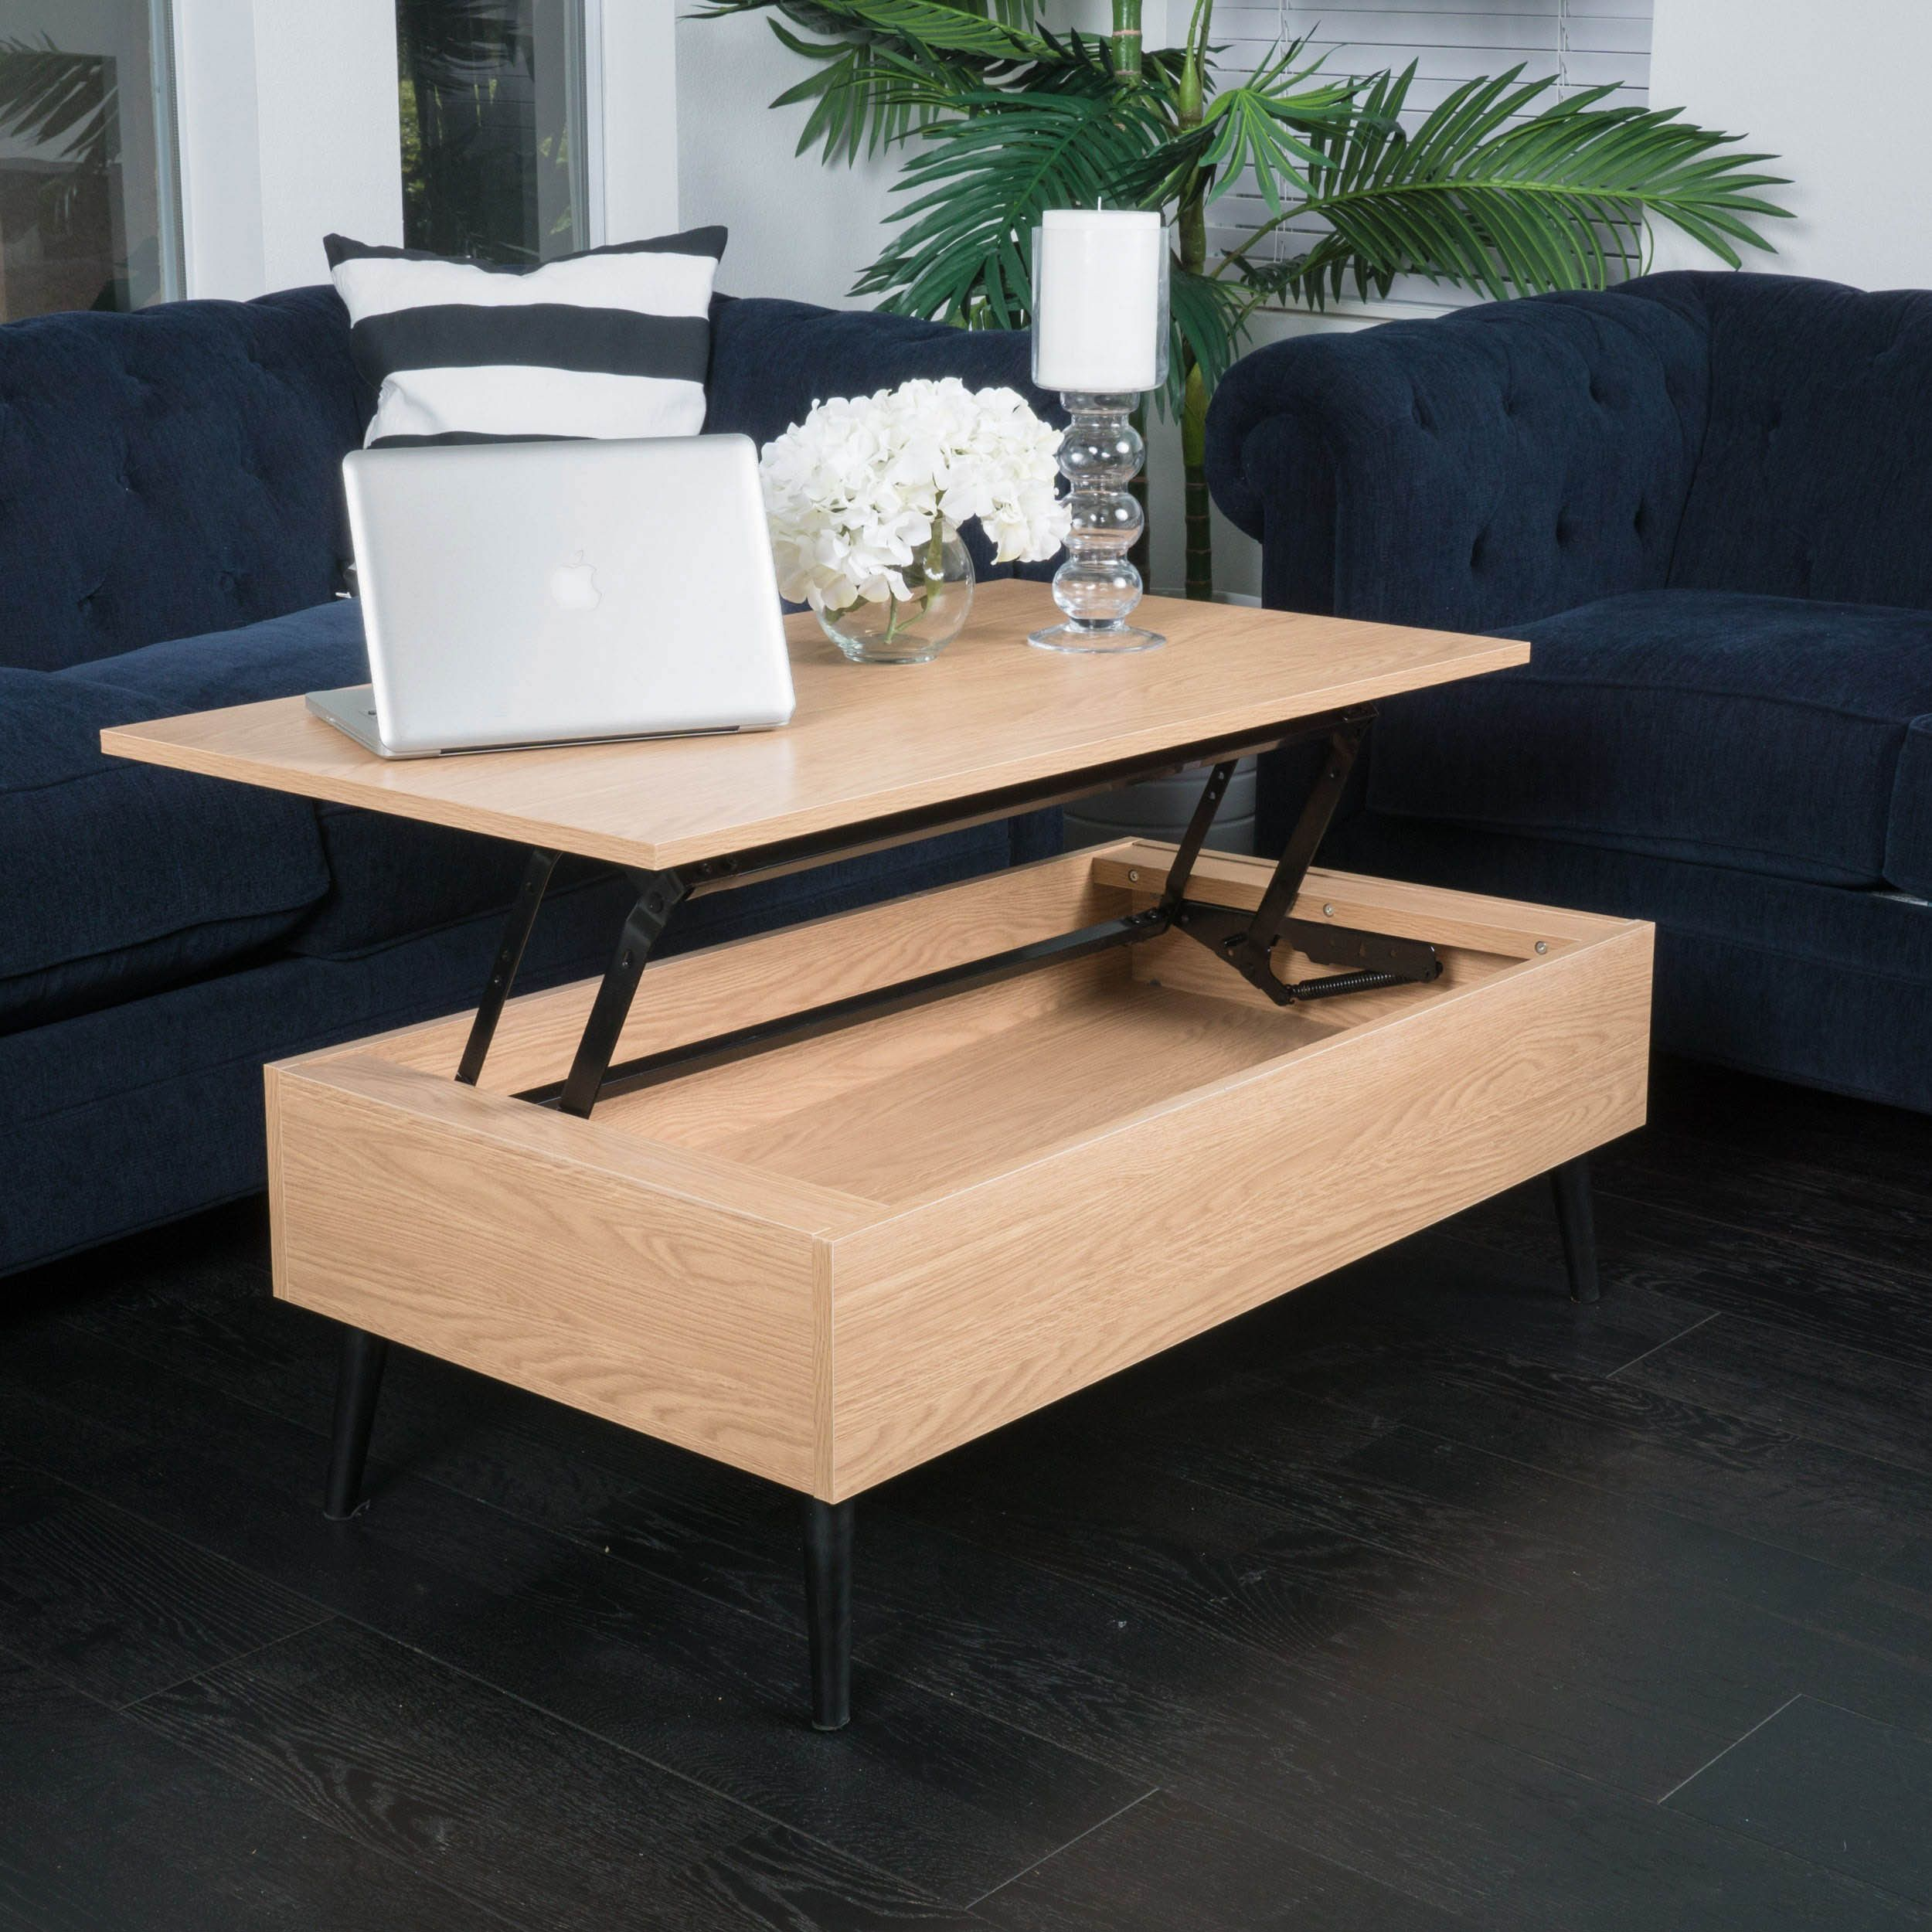 The Elliot lift top storage coffee table provides a unique way to